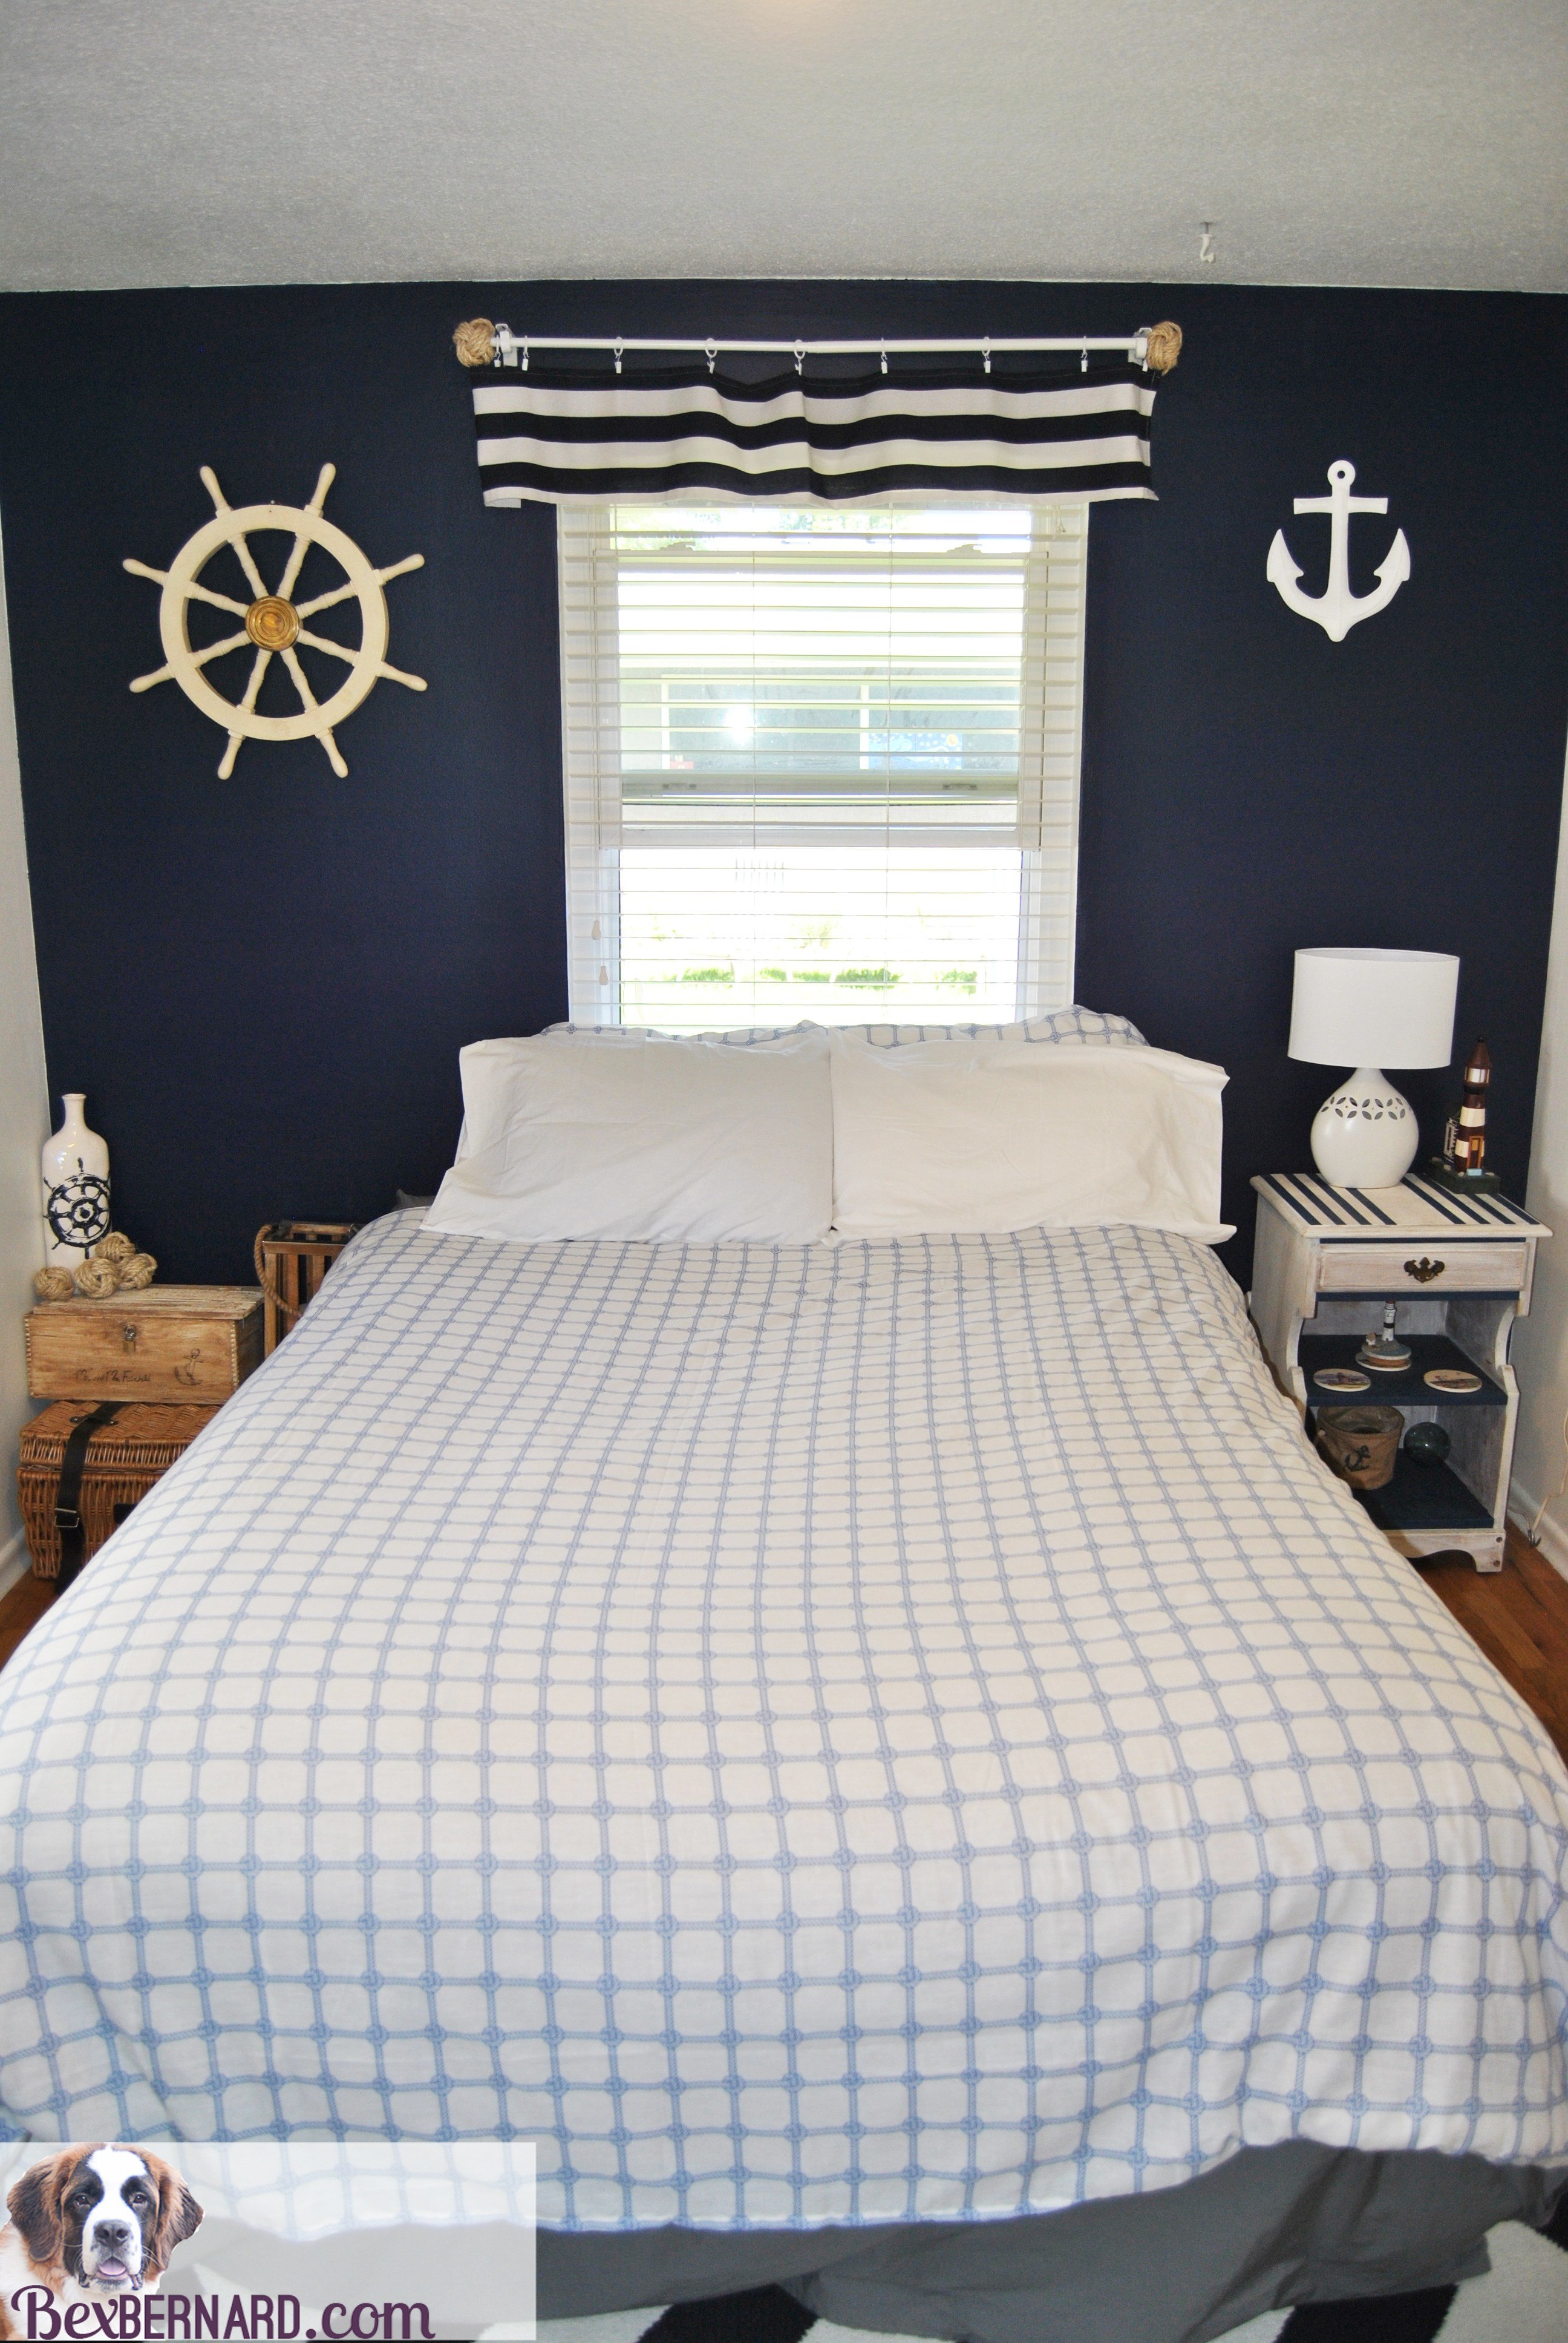 Best Nautical Bedroom Home Decor Bexbernard With Pictures